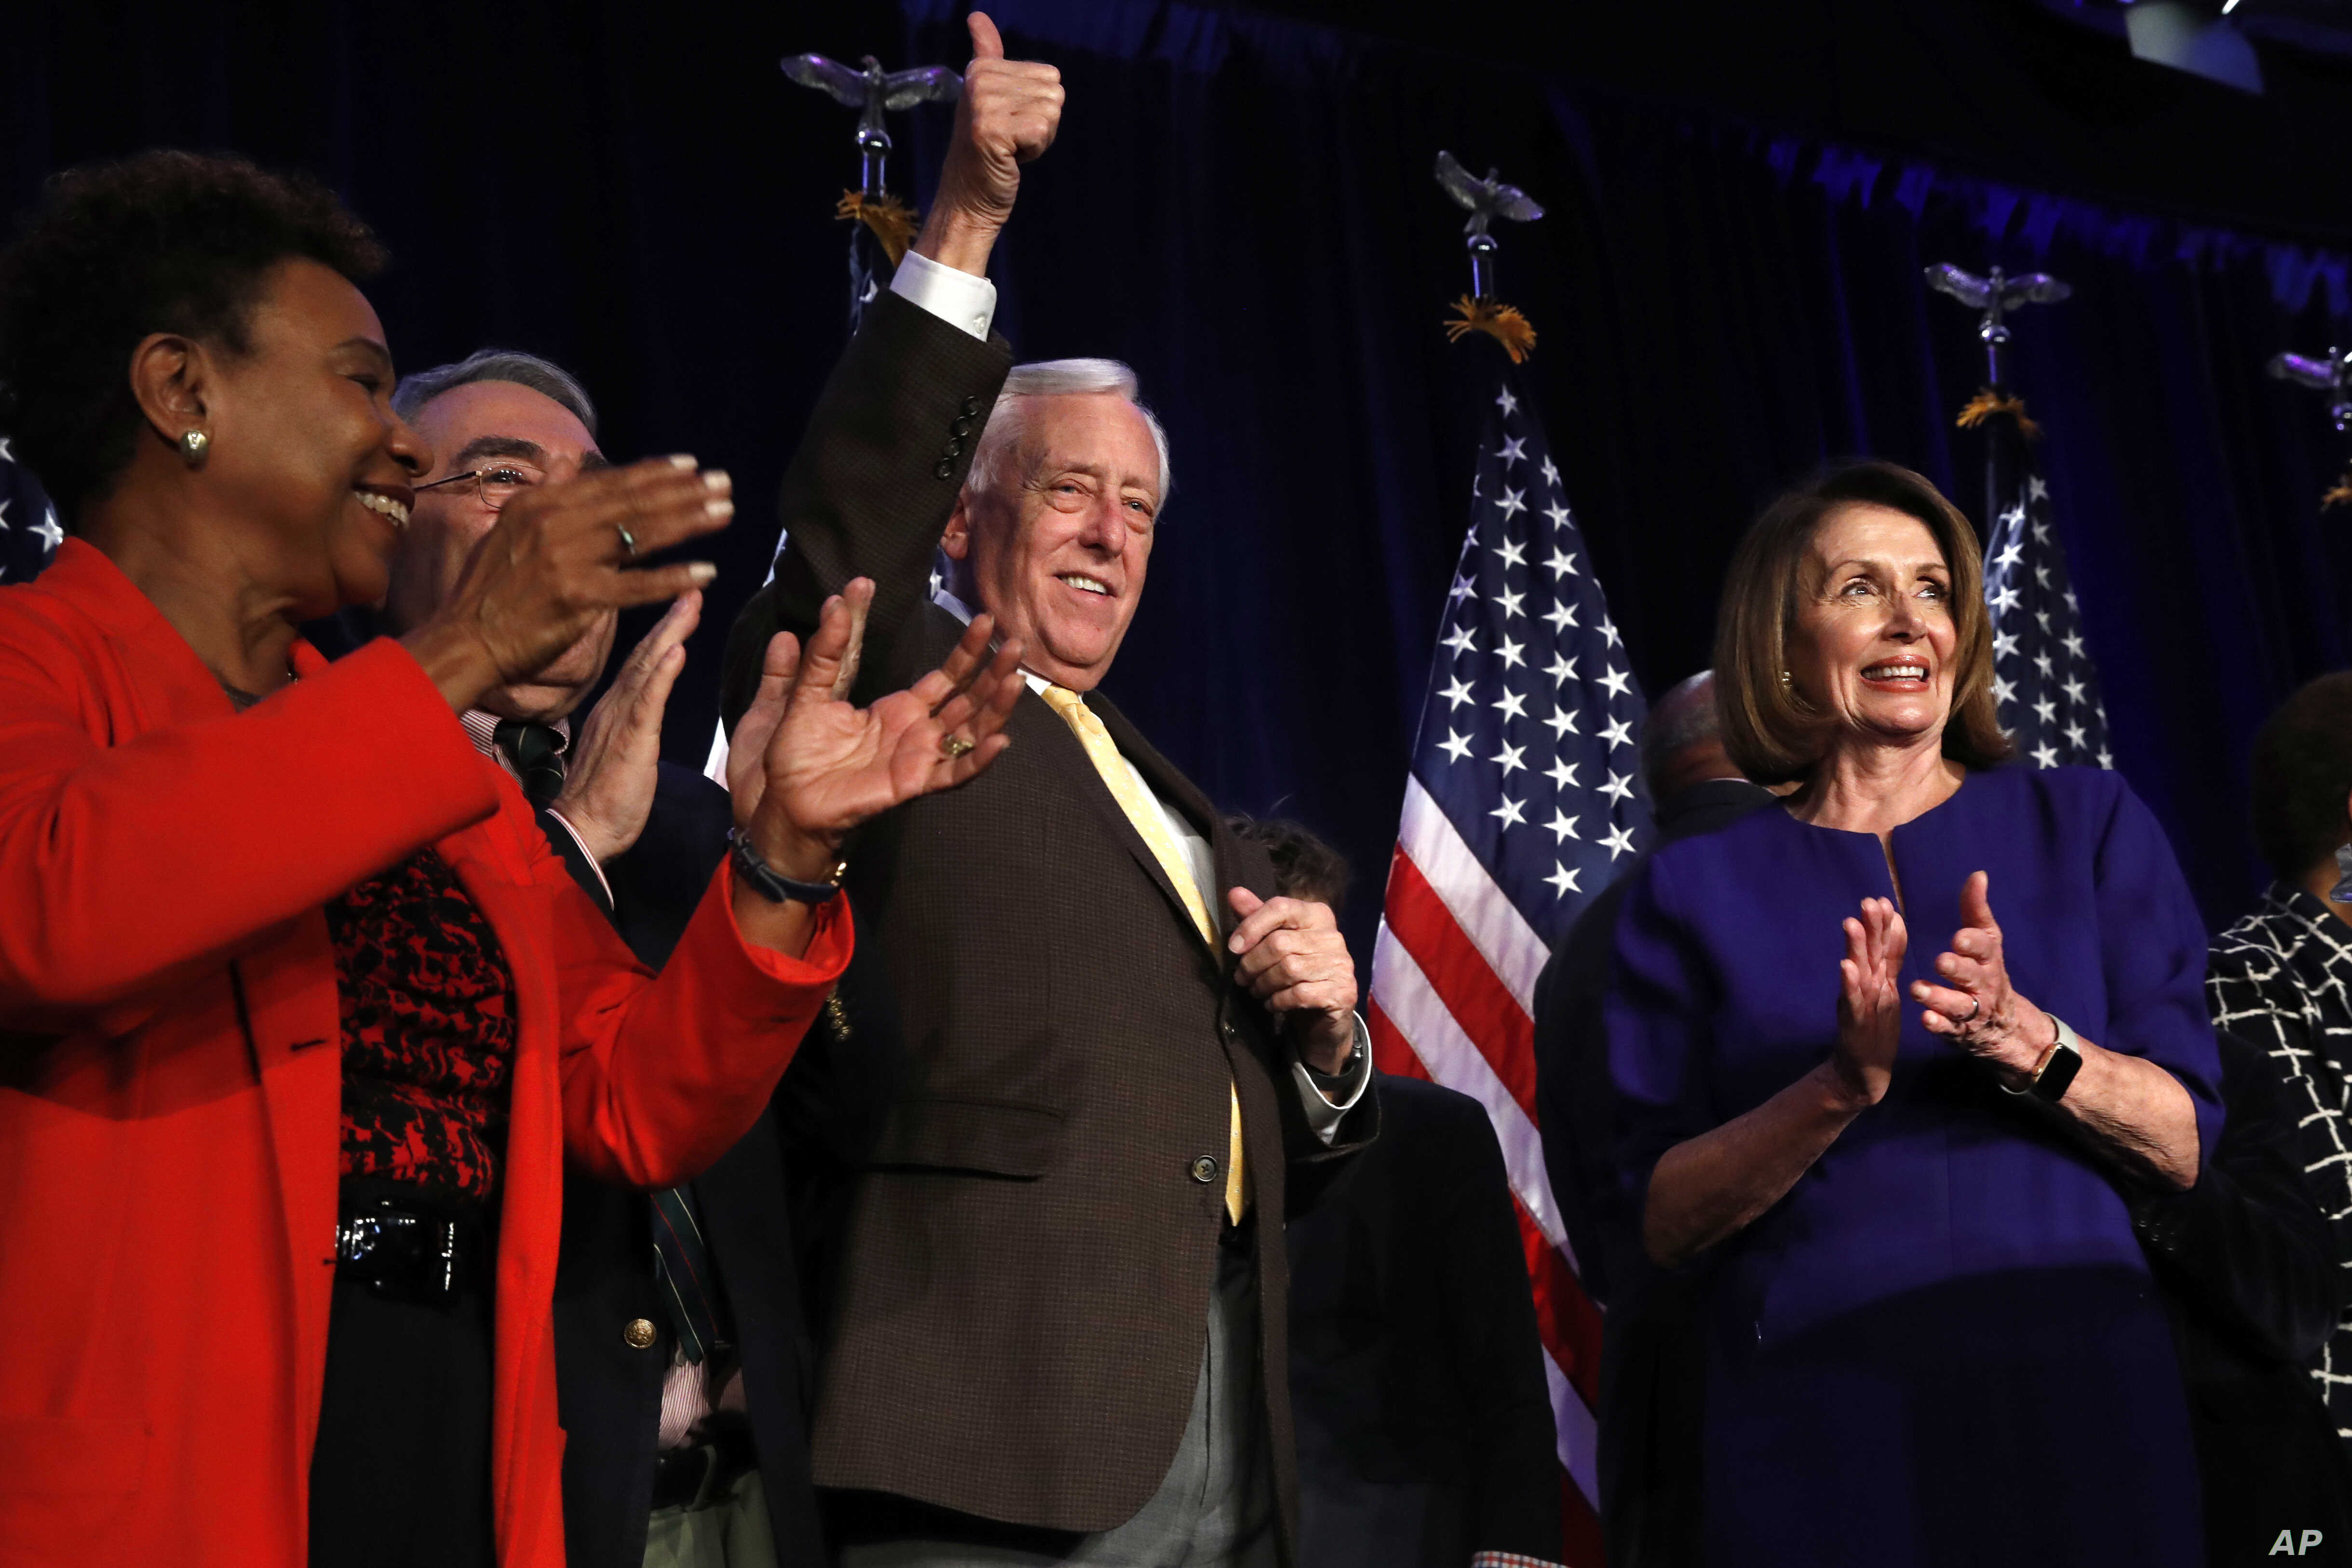 House Minority Leader Nancy Pelosi of Calif., right, steps away from the podium as House Minority Whip Steny Hoyer, D-Md., makes the thumbs up sign, after Pelosi spoke about Democratic gains in the House of Representatives to a crowd of Democratic su...